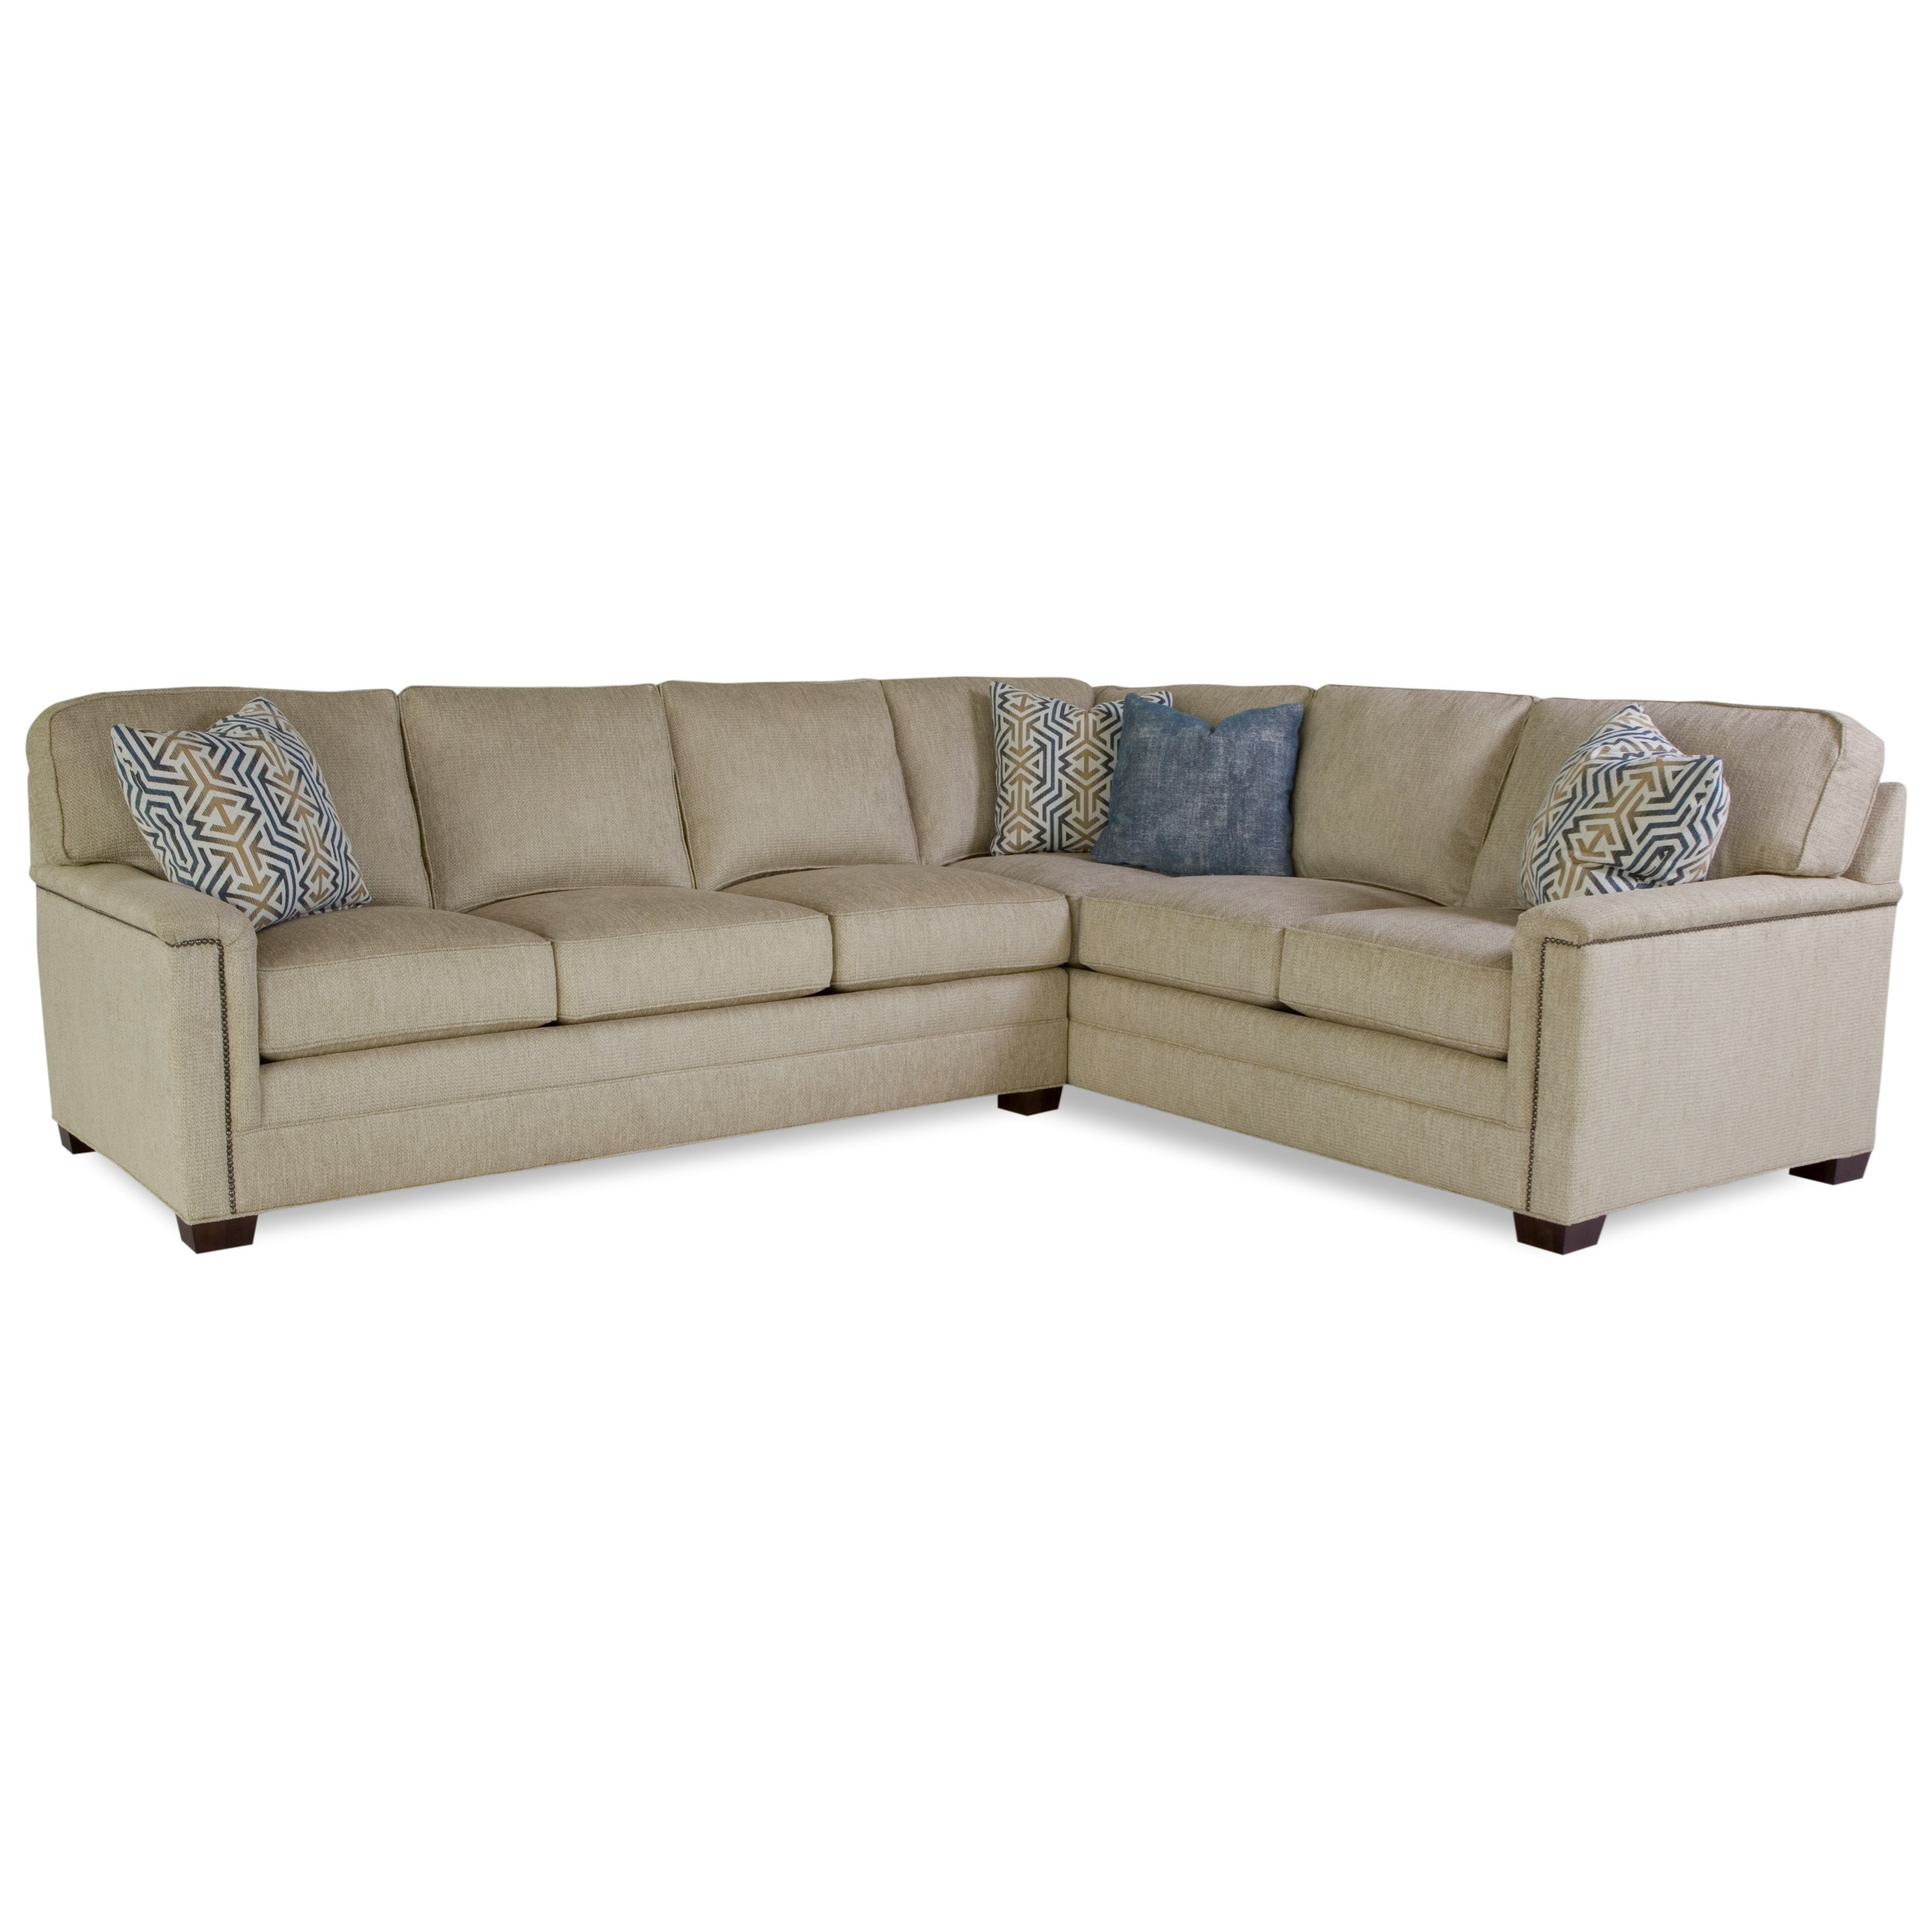 2062 Customizable Sectional by Geoffrey Alexander at Sprintz Furniture